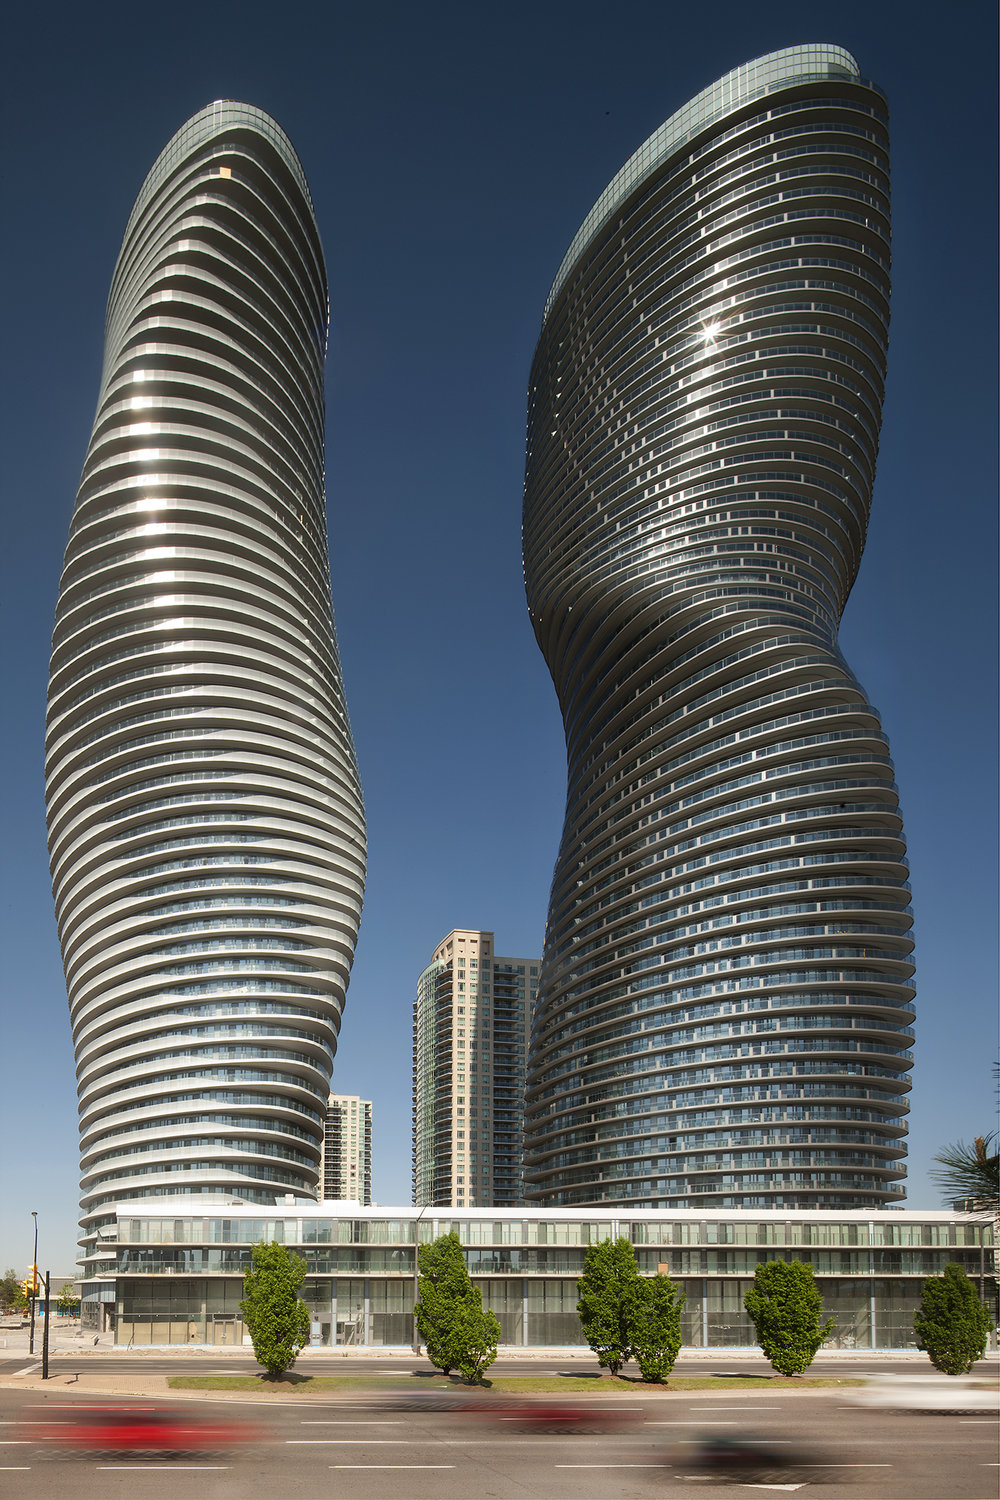 mad architects |absolute towers | mississauga canada